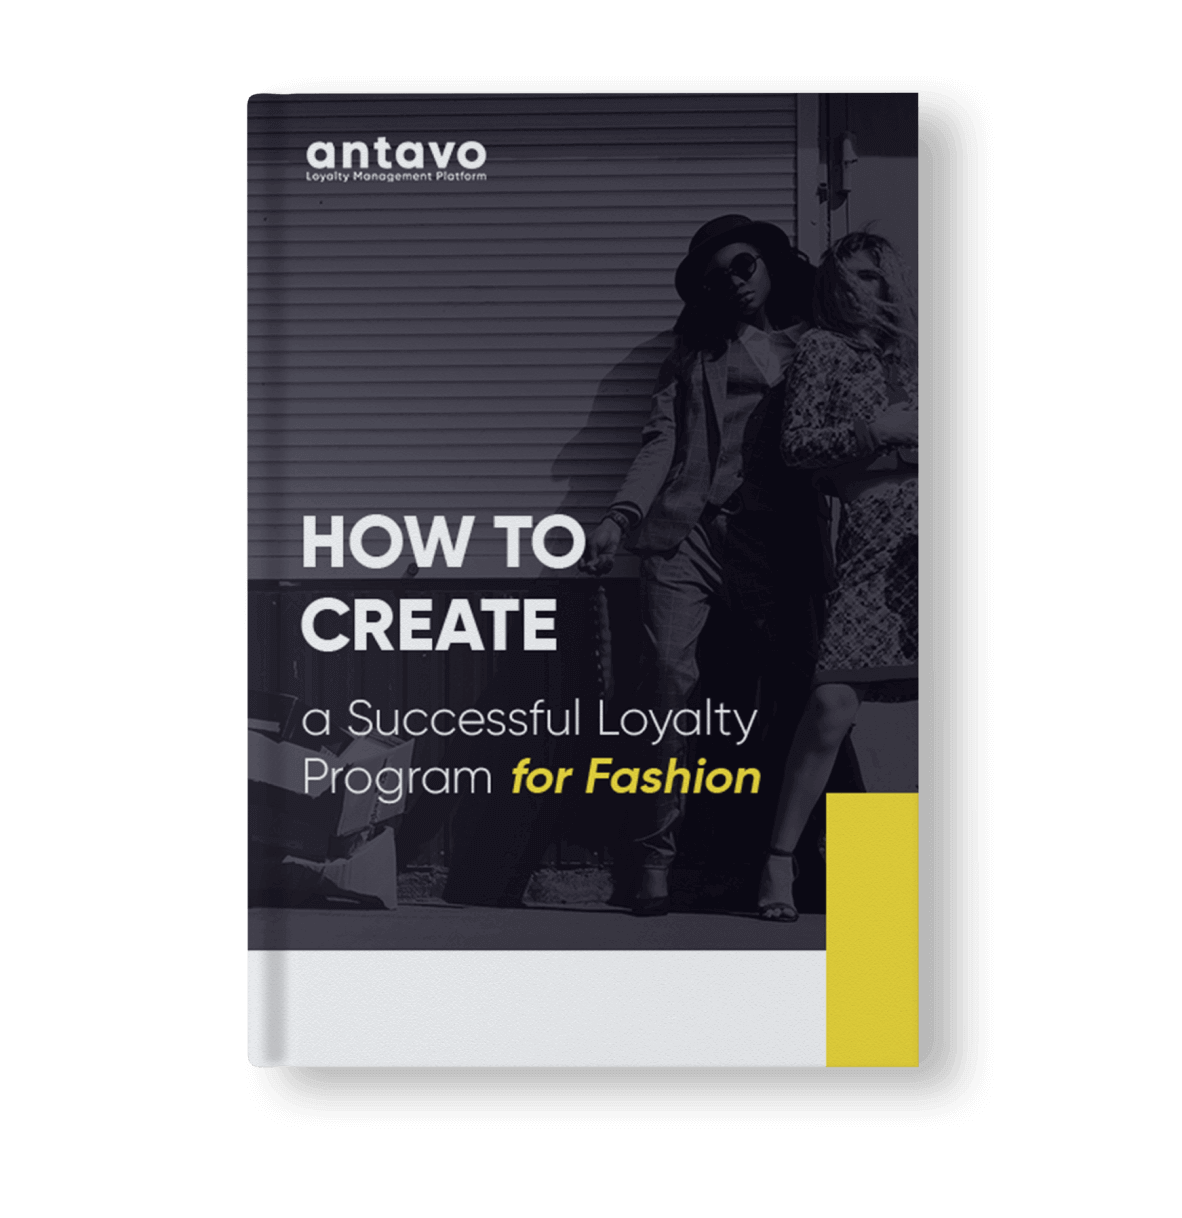 Antavo's Ebook: How to Create a Successful Loyalty Program for Fashion